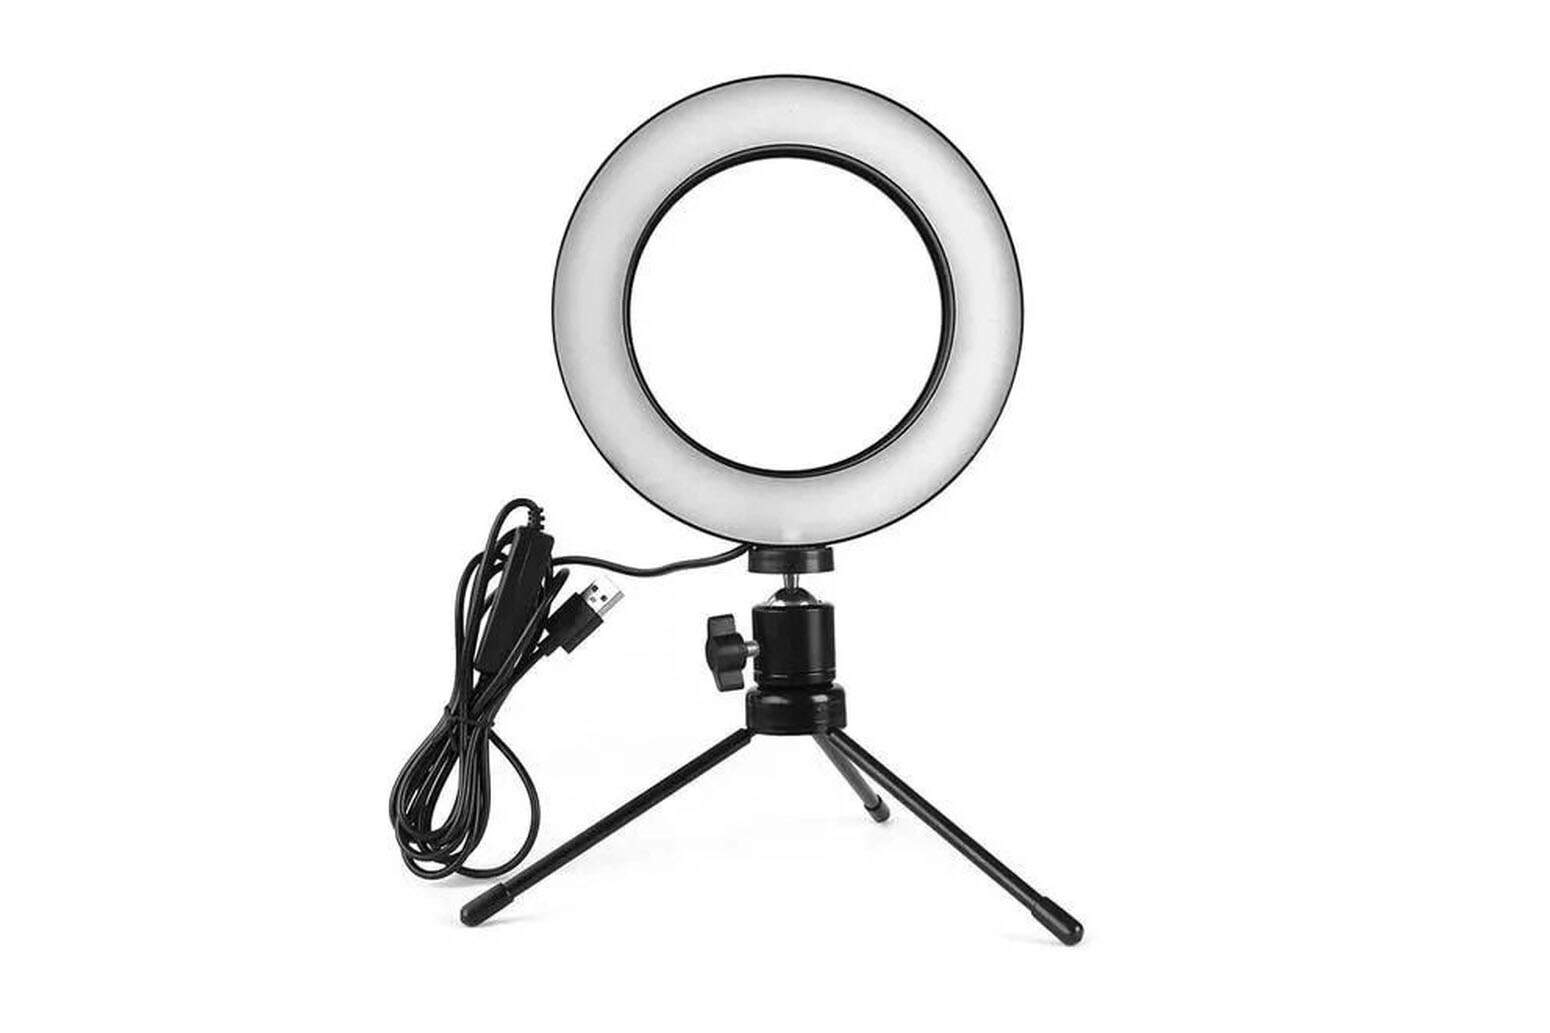 Iluminador De Led Com Tripe Ring Light Usb 16cm 6 Polegadas